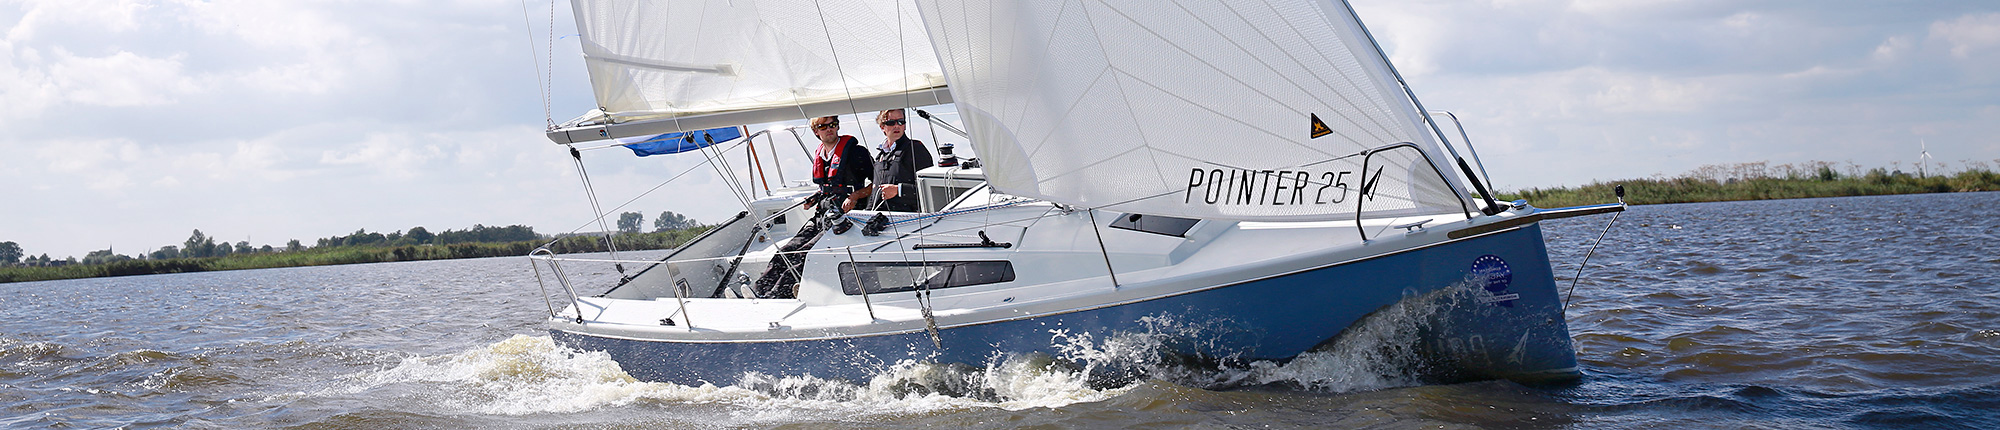 Pointer 25 in beeld